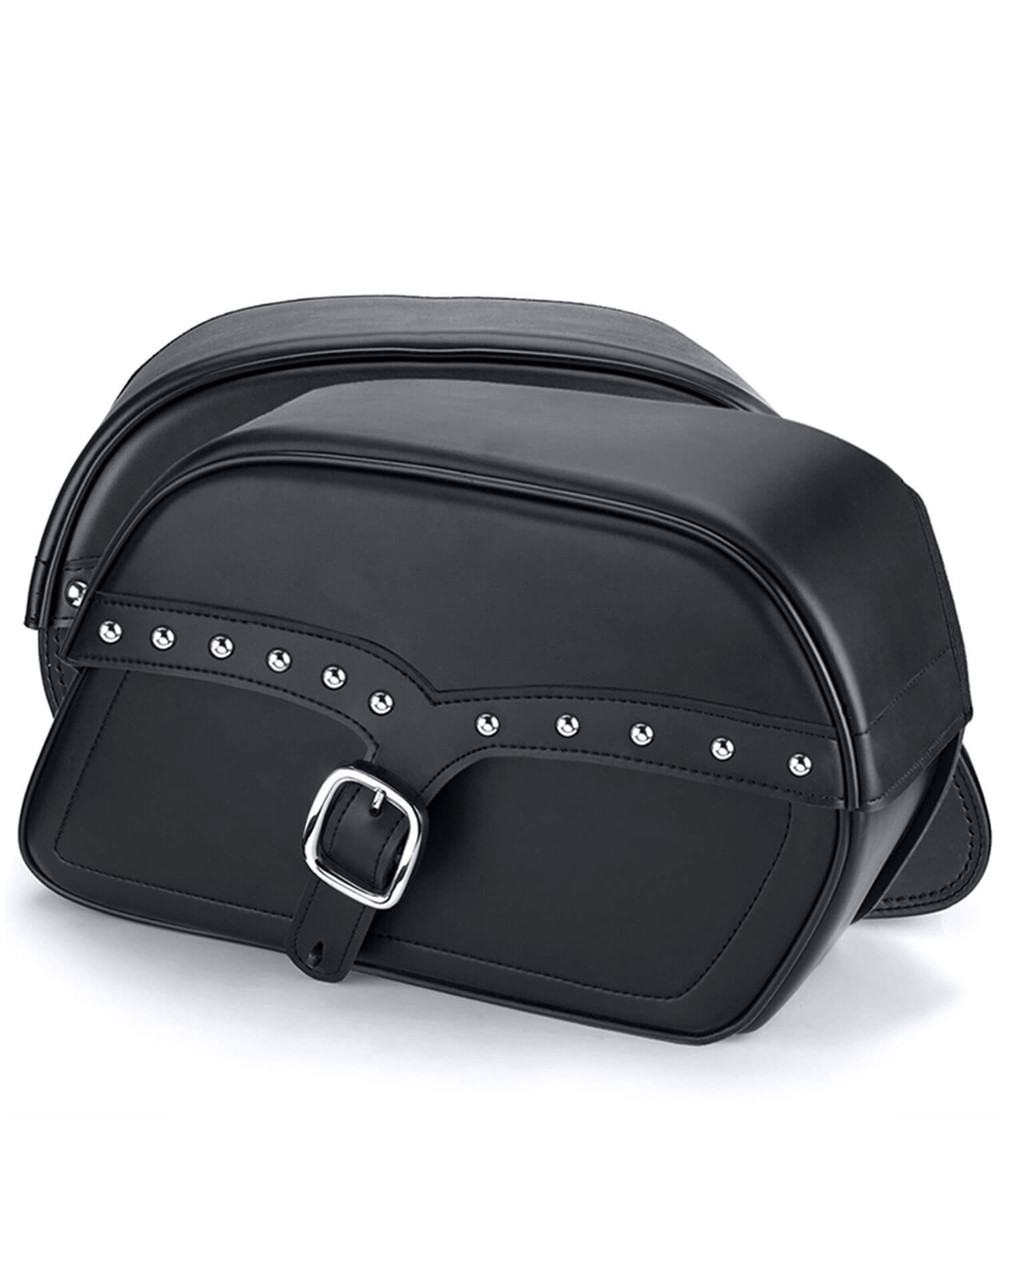 VikingBags Char SS Medium Single Strap Studded Victory Boardwalk Leather Motorcycle Saddlebags Both Bags View